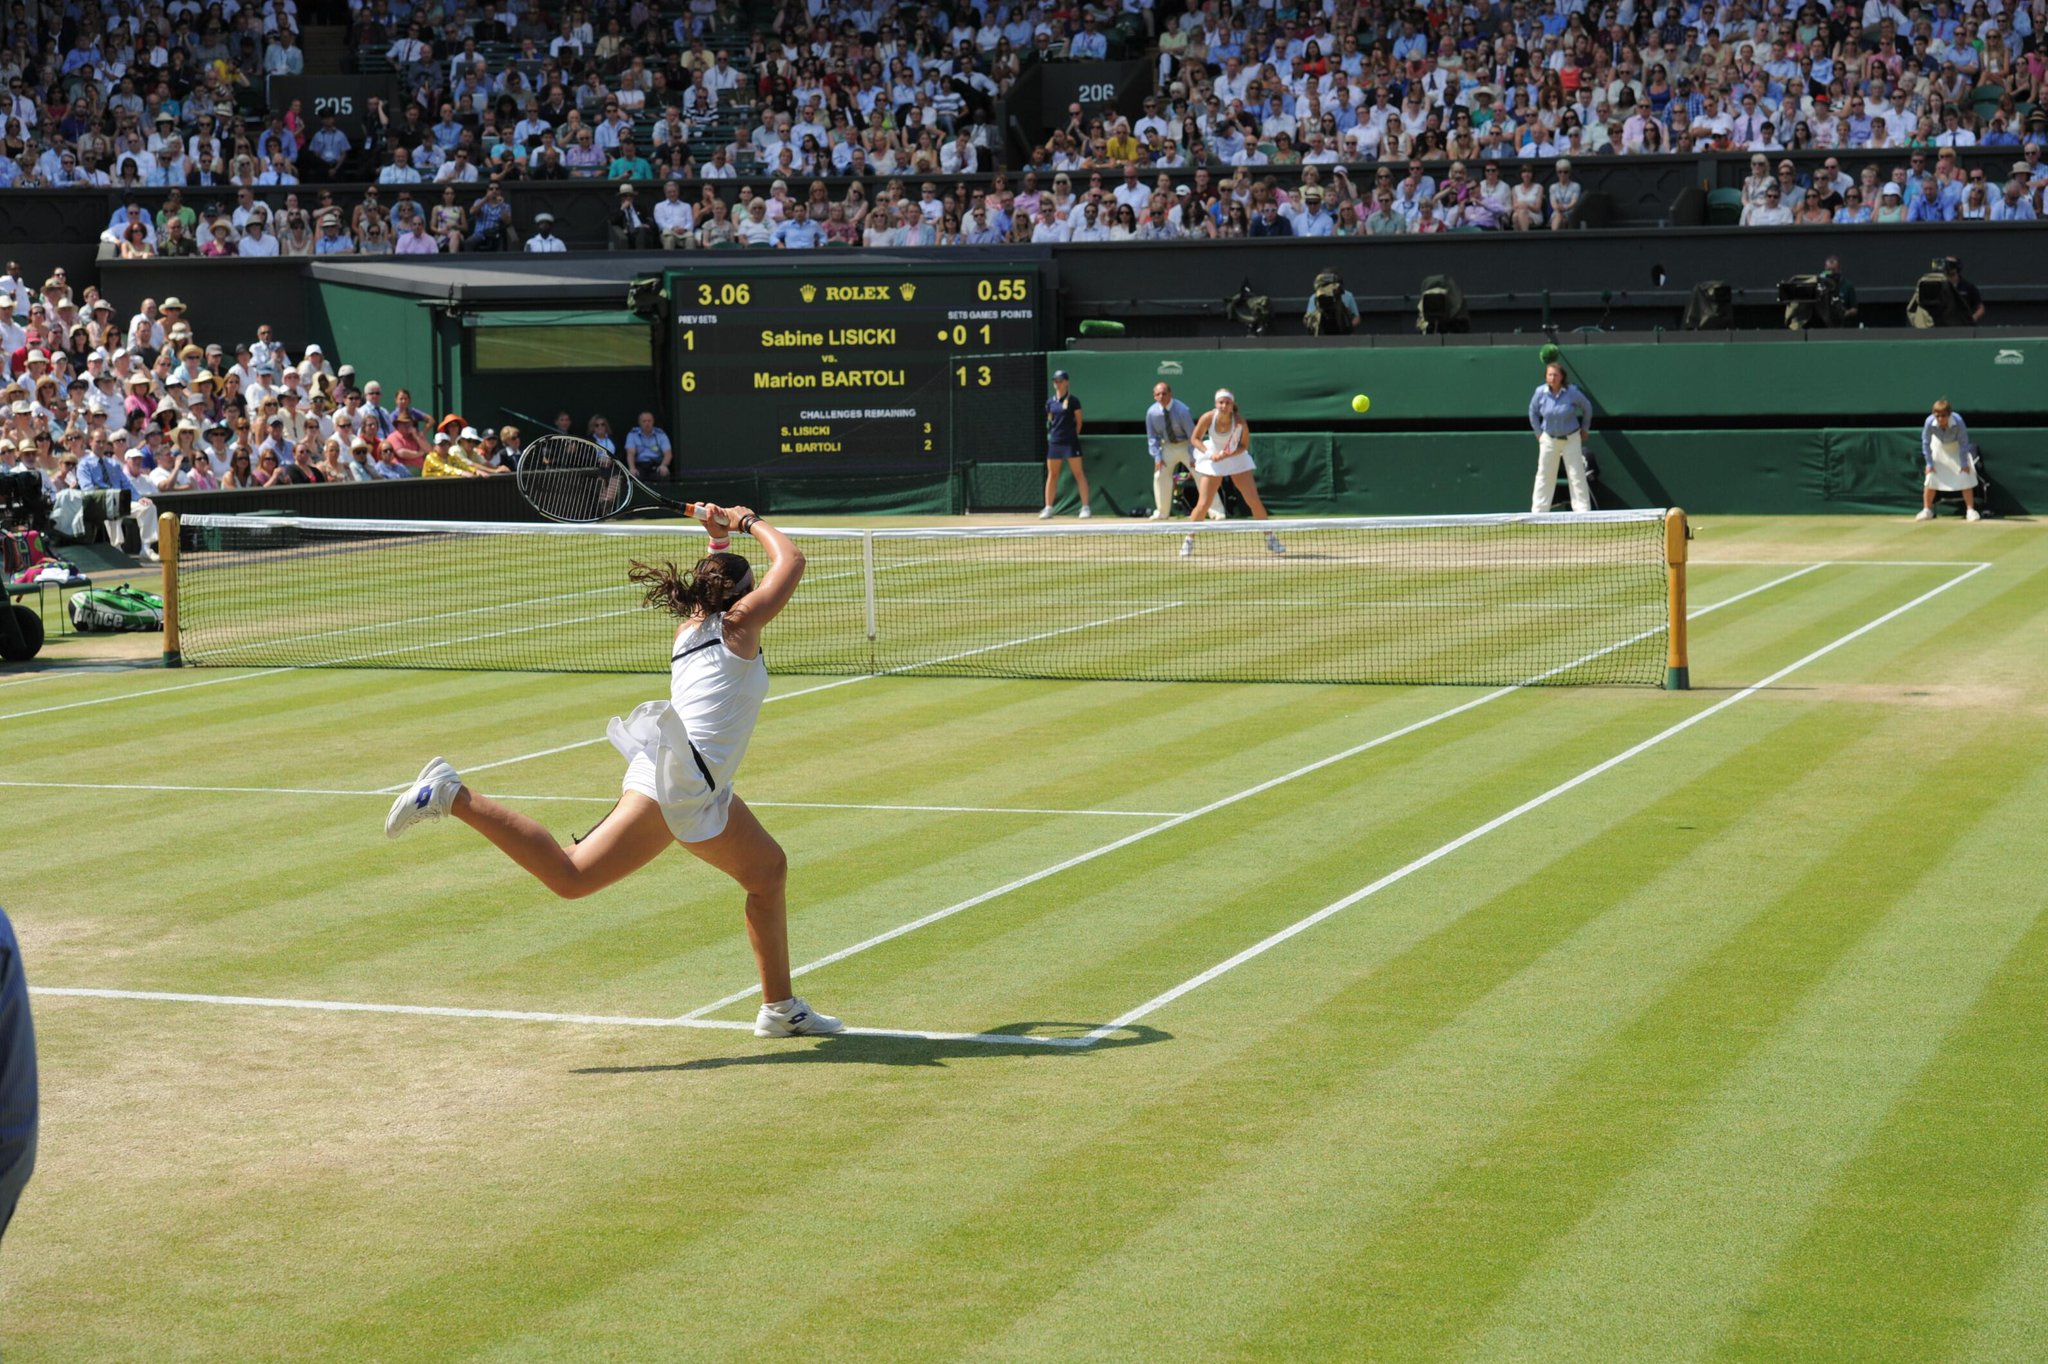 Three more Championship points #Bartoli #Wimbledon http://t.co/fjxir4zOD7